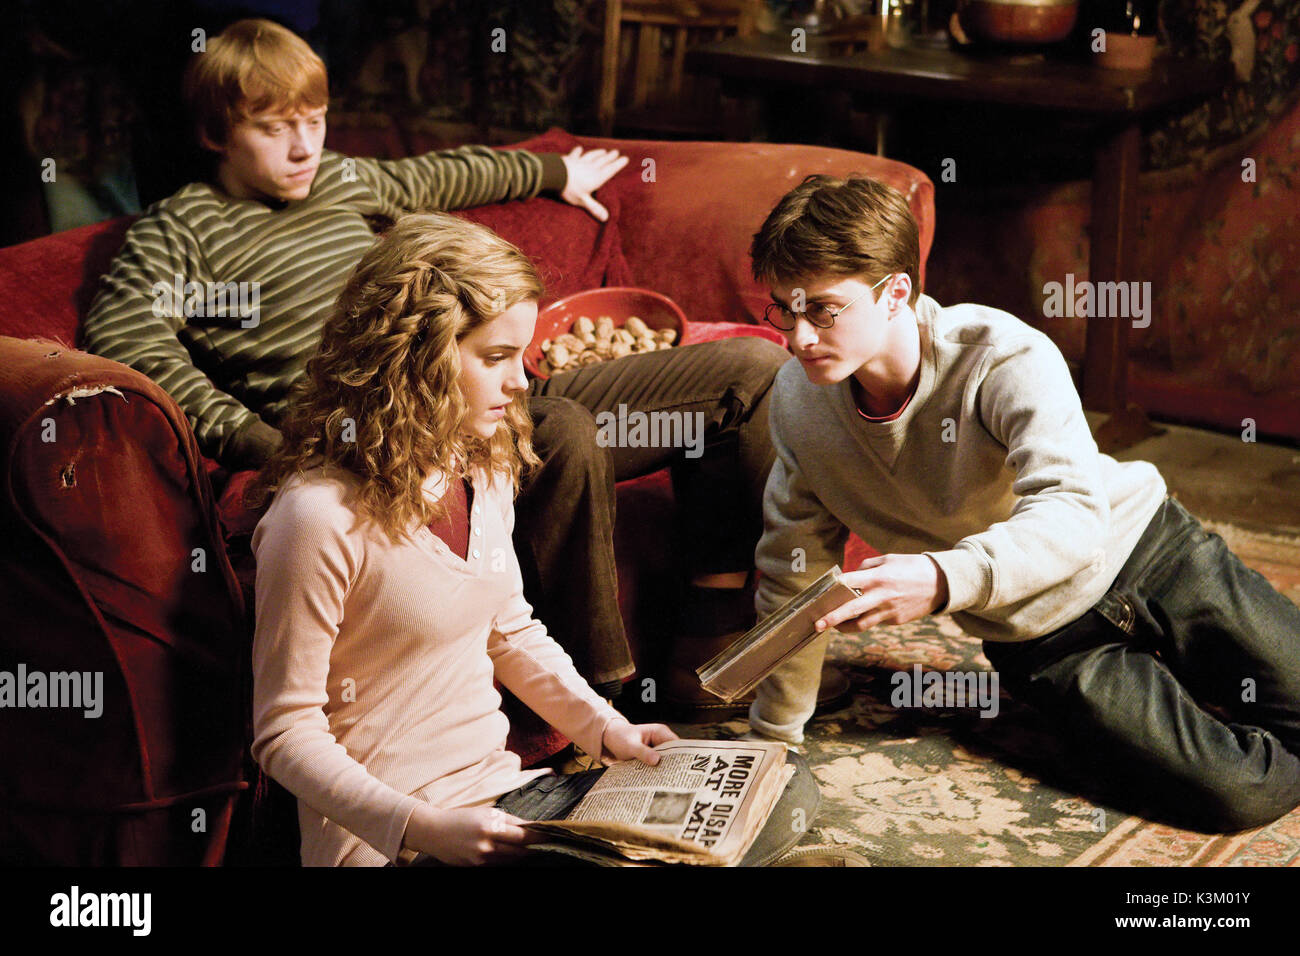 Weasley Dating Hermione And Granger Ron